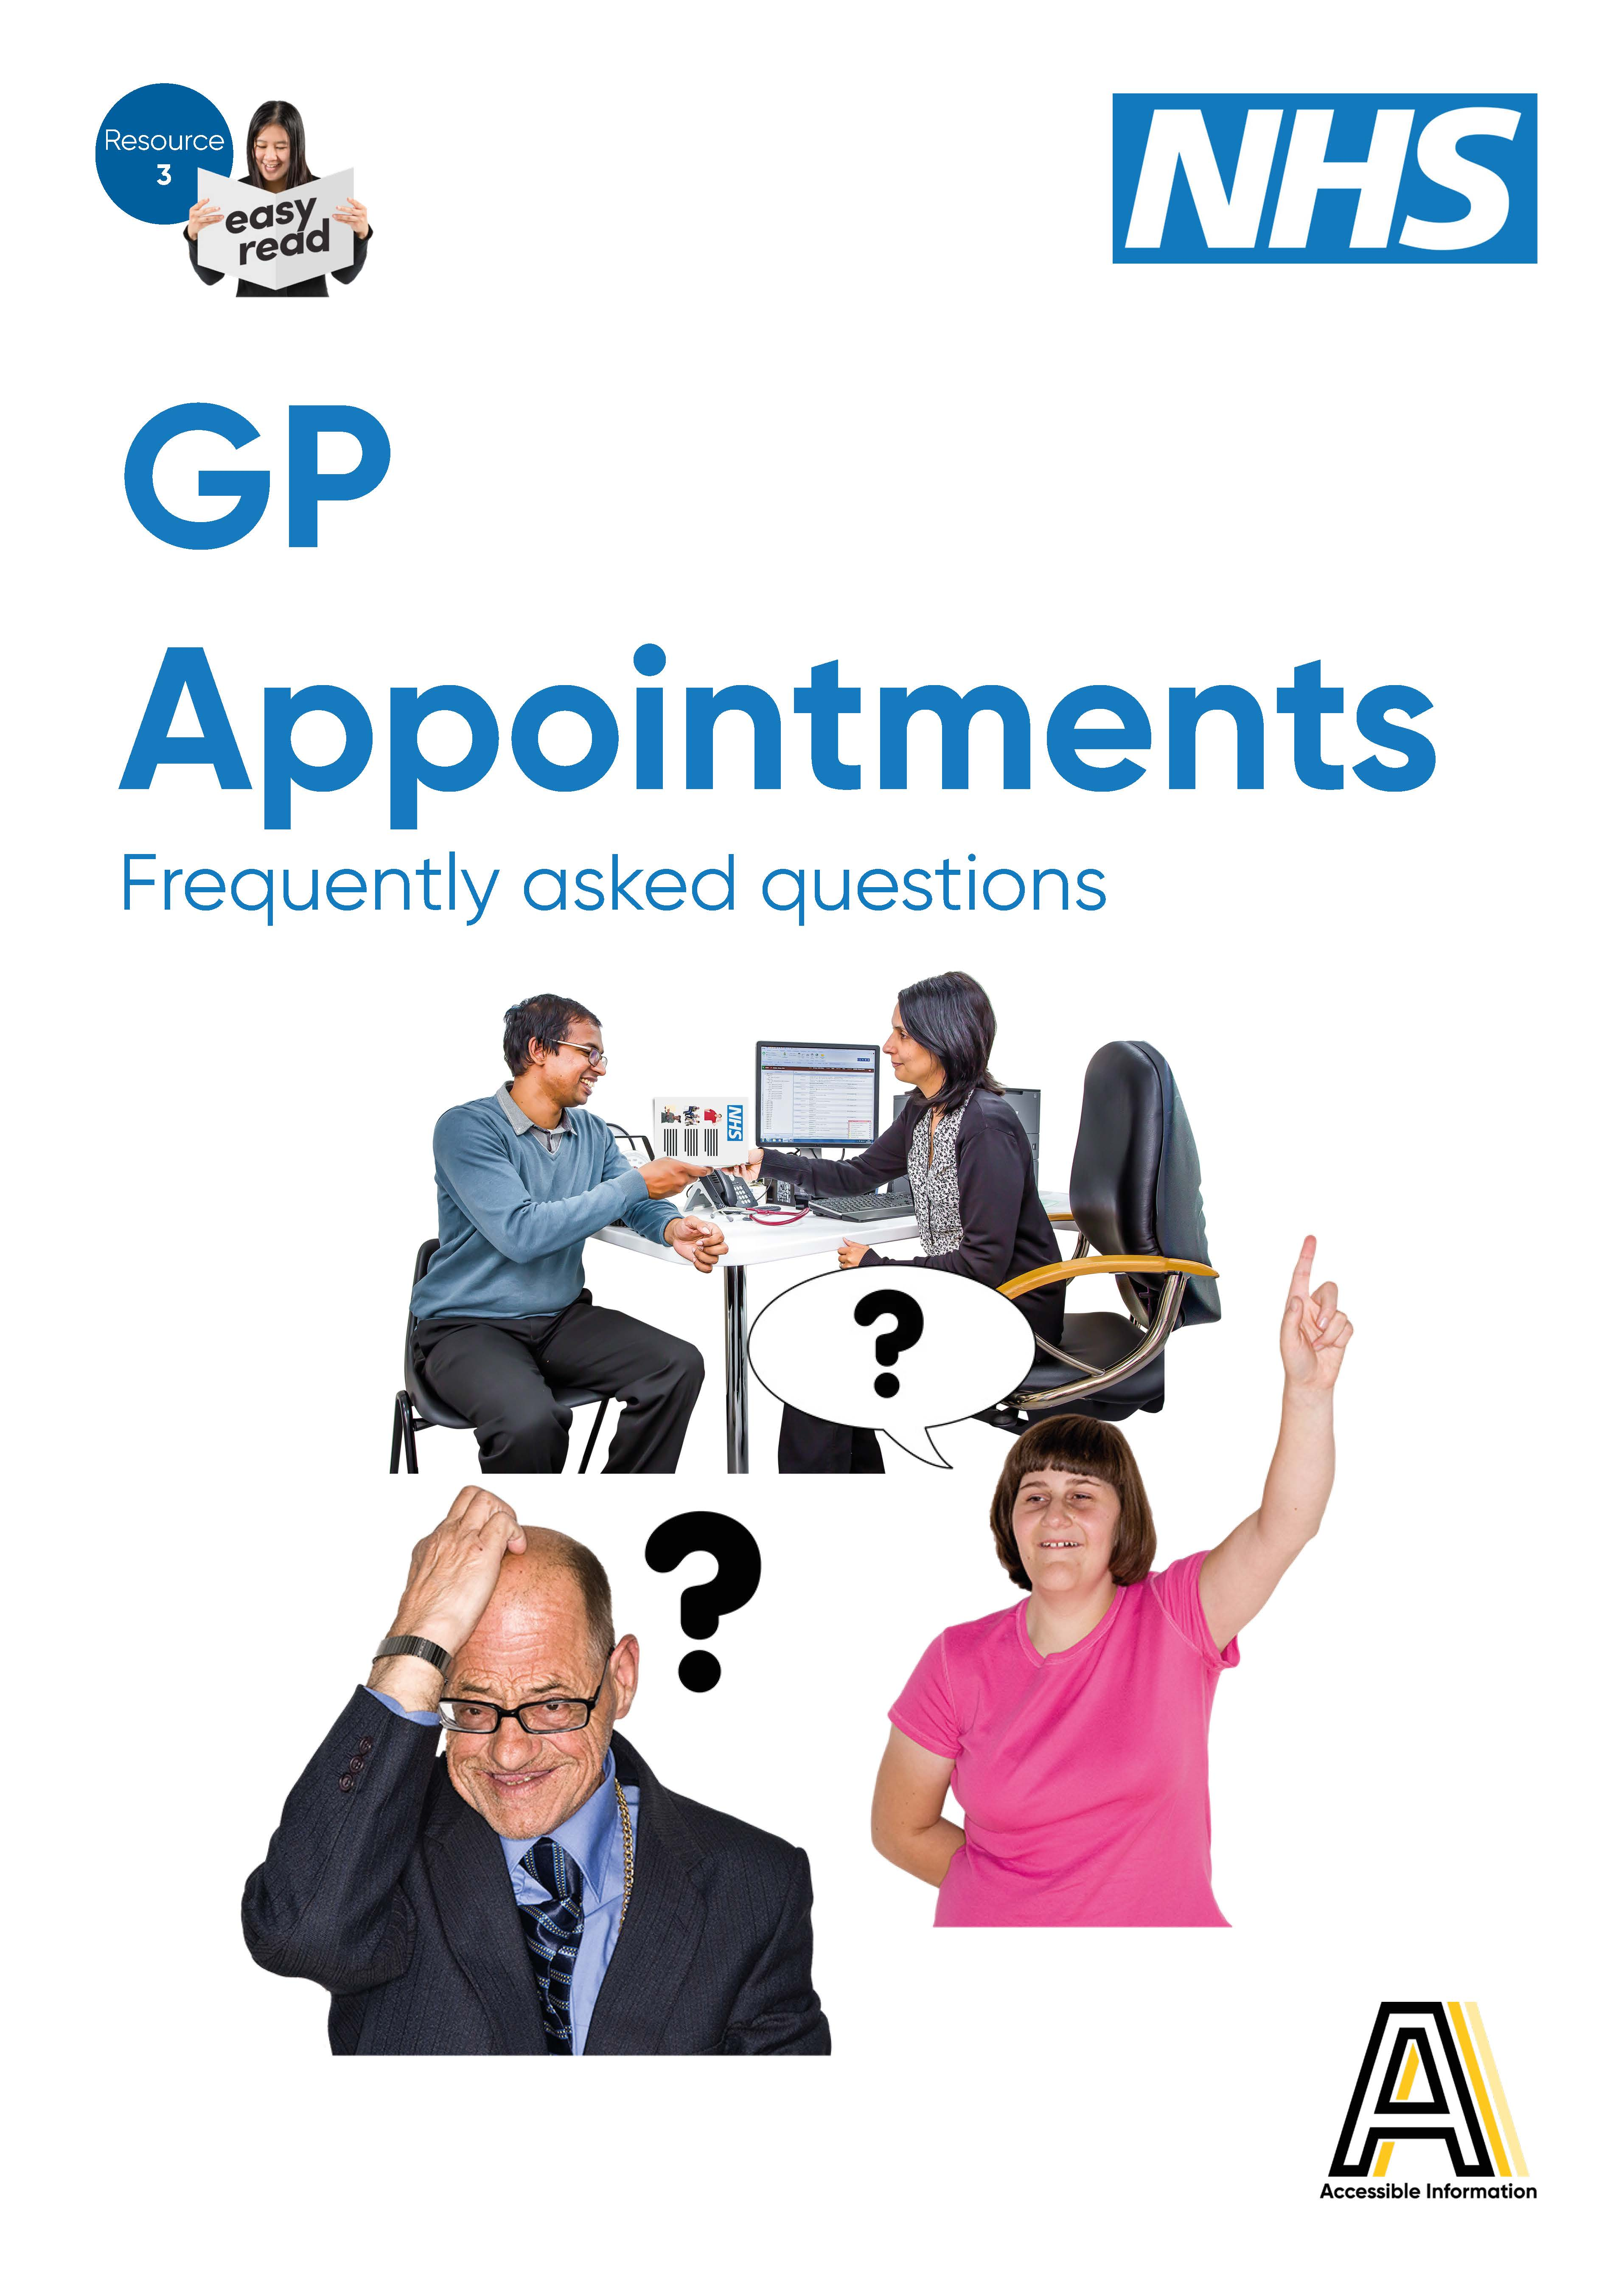 03 Information about GP appointments (Essex)